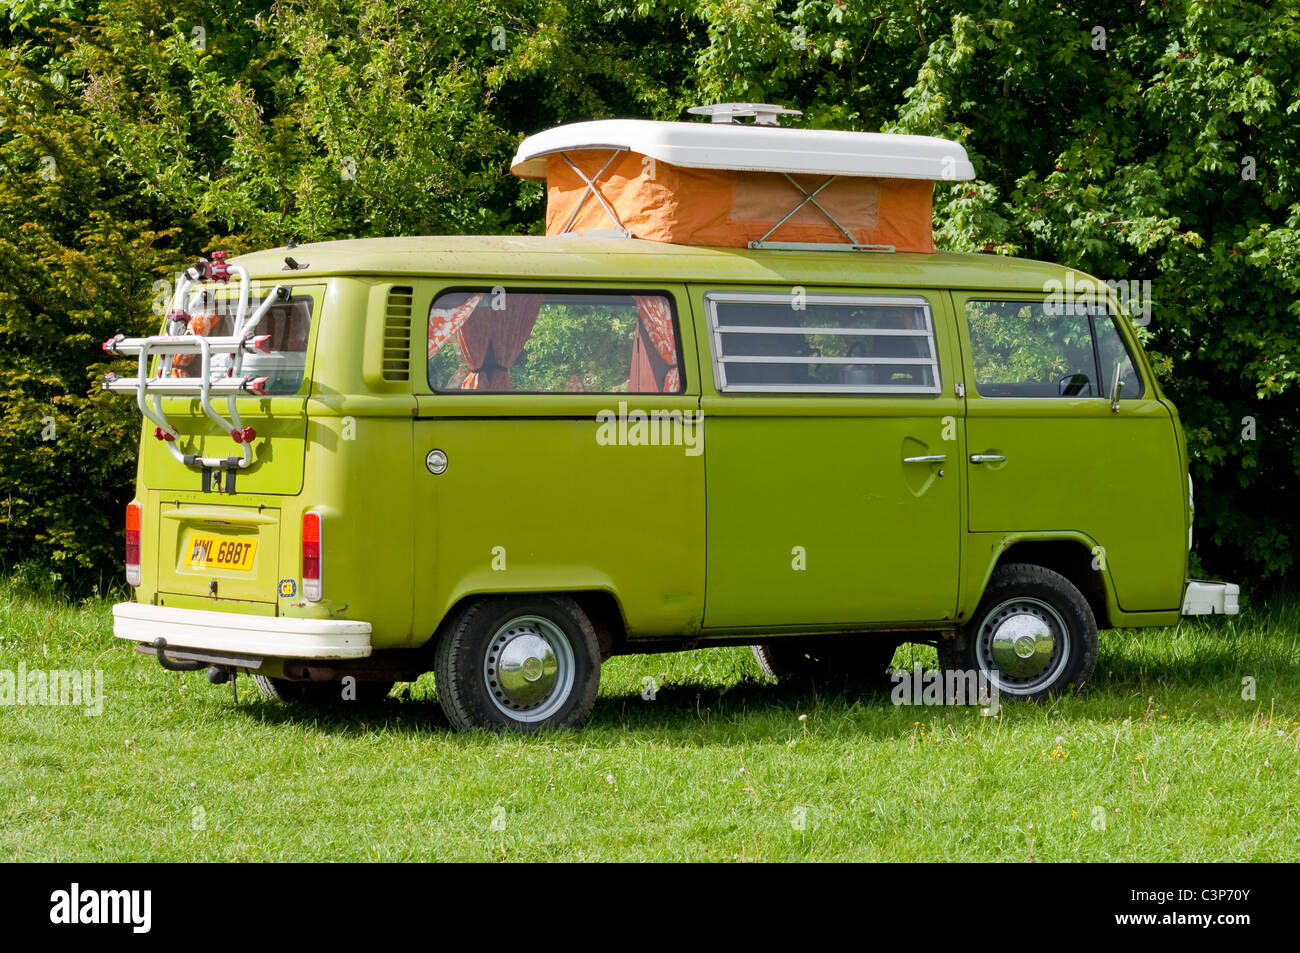 Lime green VW camper van parked in a field. UK - Stock Image